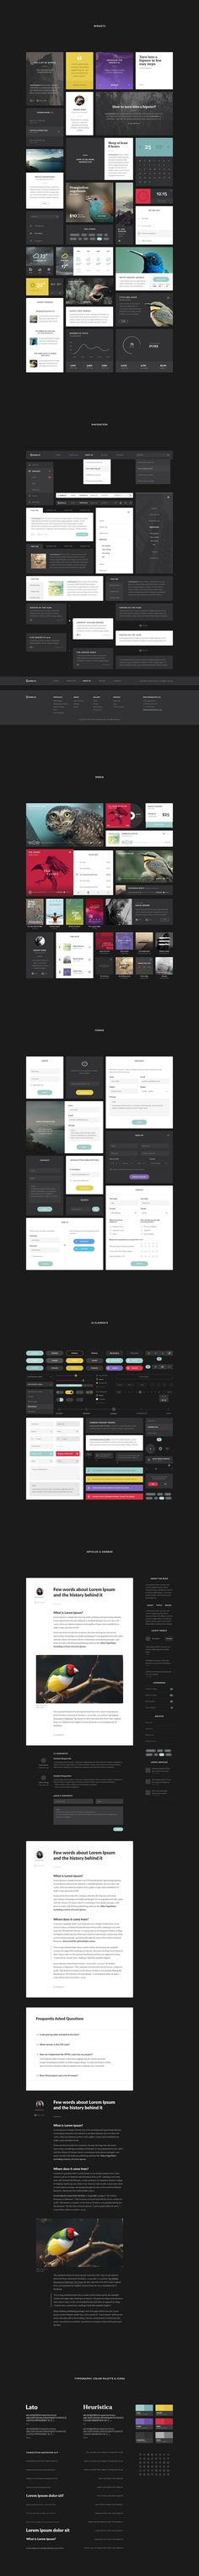 Aves-ui-all-elements... #grafica #web